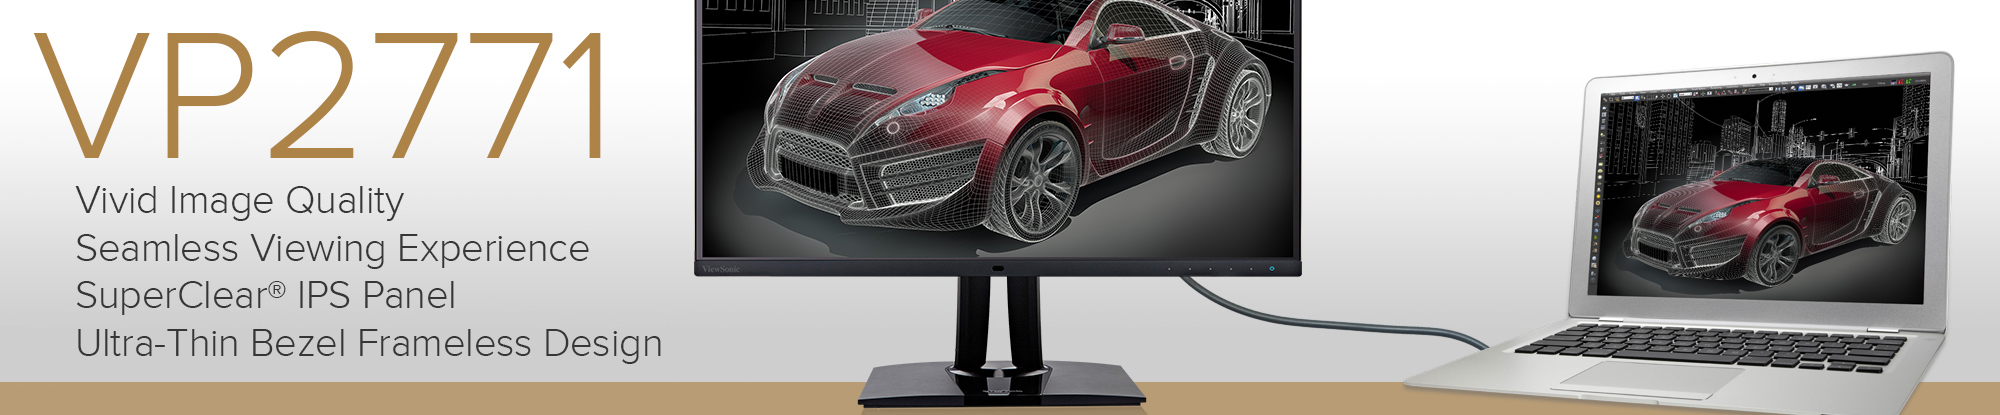 ViewSonic Introduces WQHD 27-inch Professional Monitor with Outstanding Color Accuracy and Screen Uniformity for Color-Critical Applications